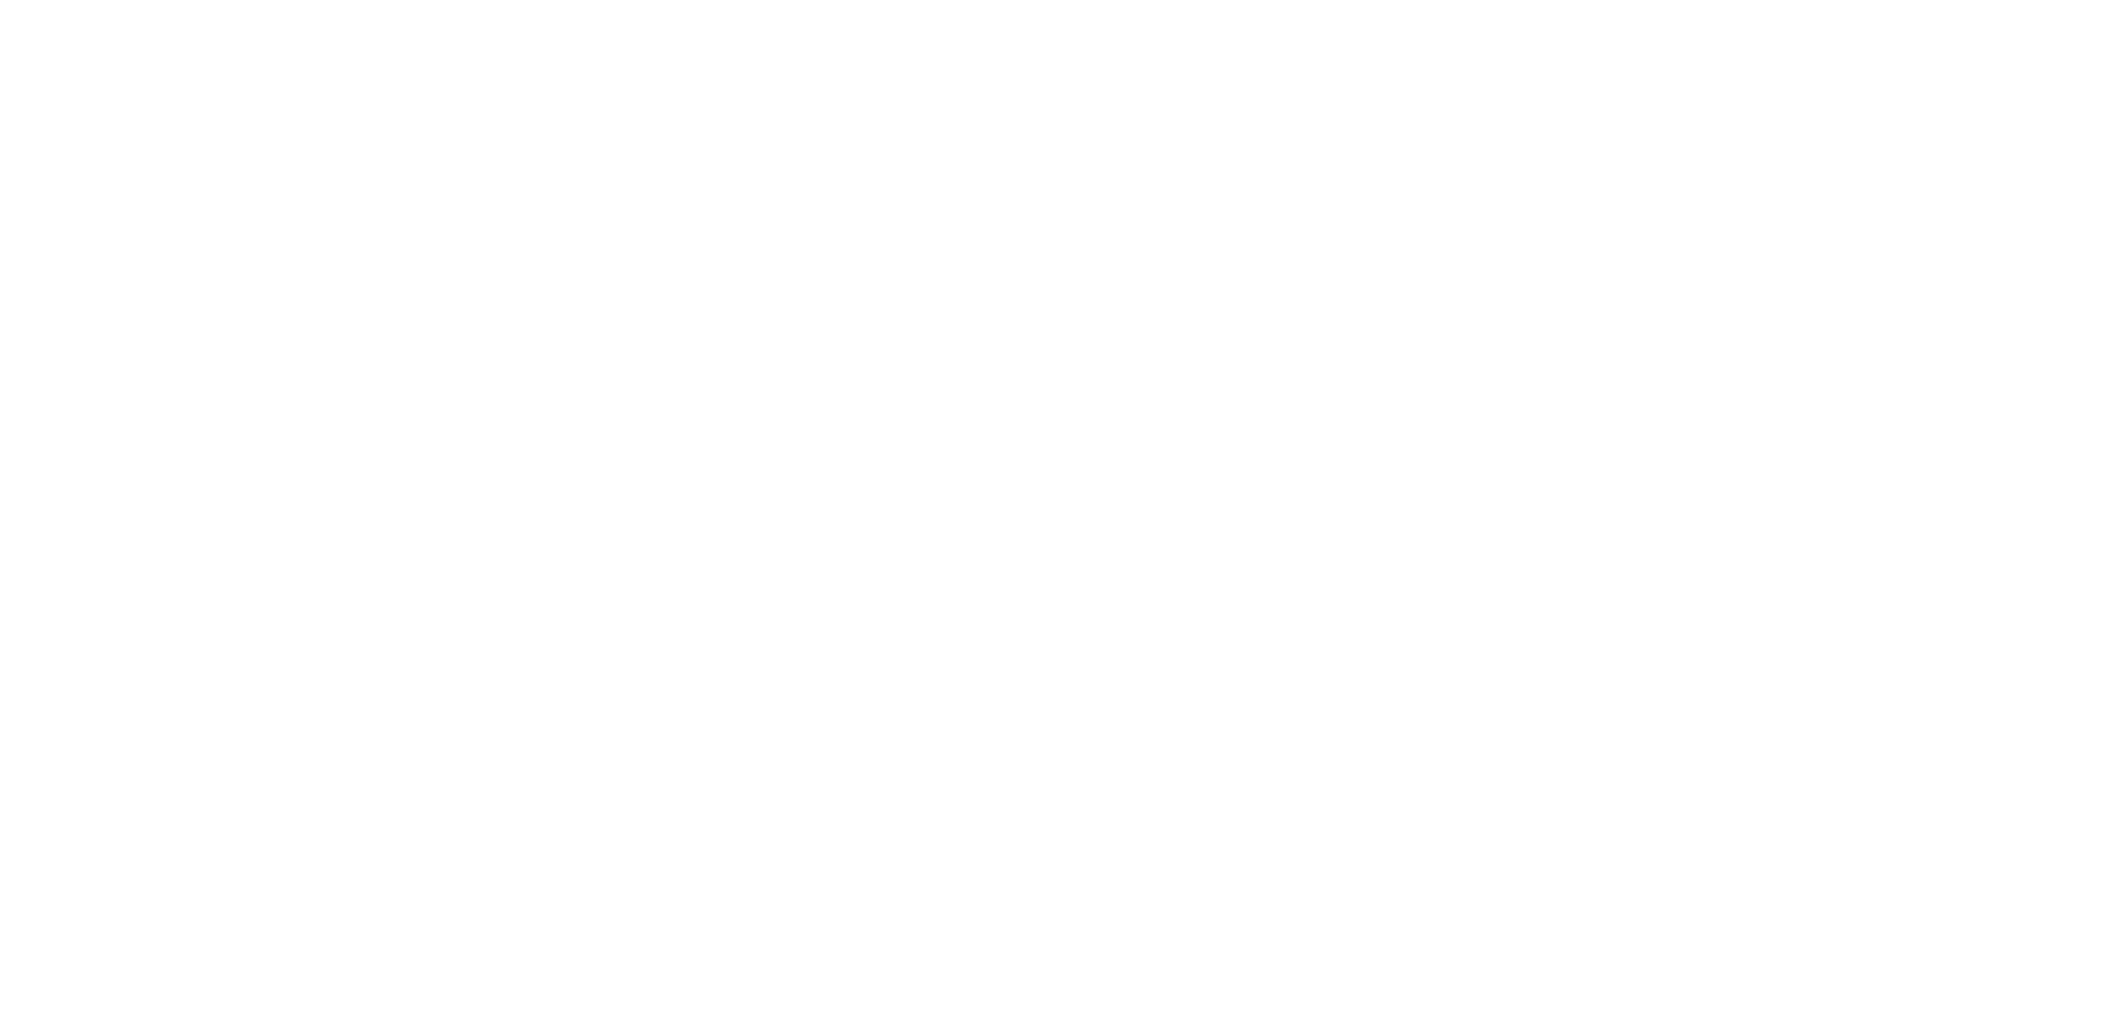 Royal Air Forces Association logo in white